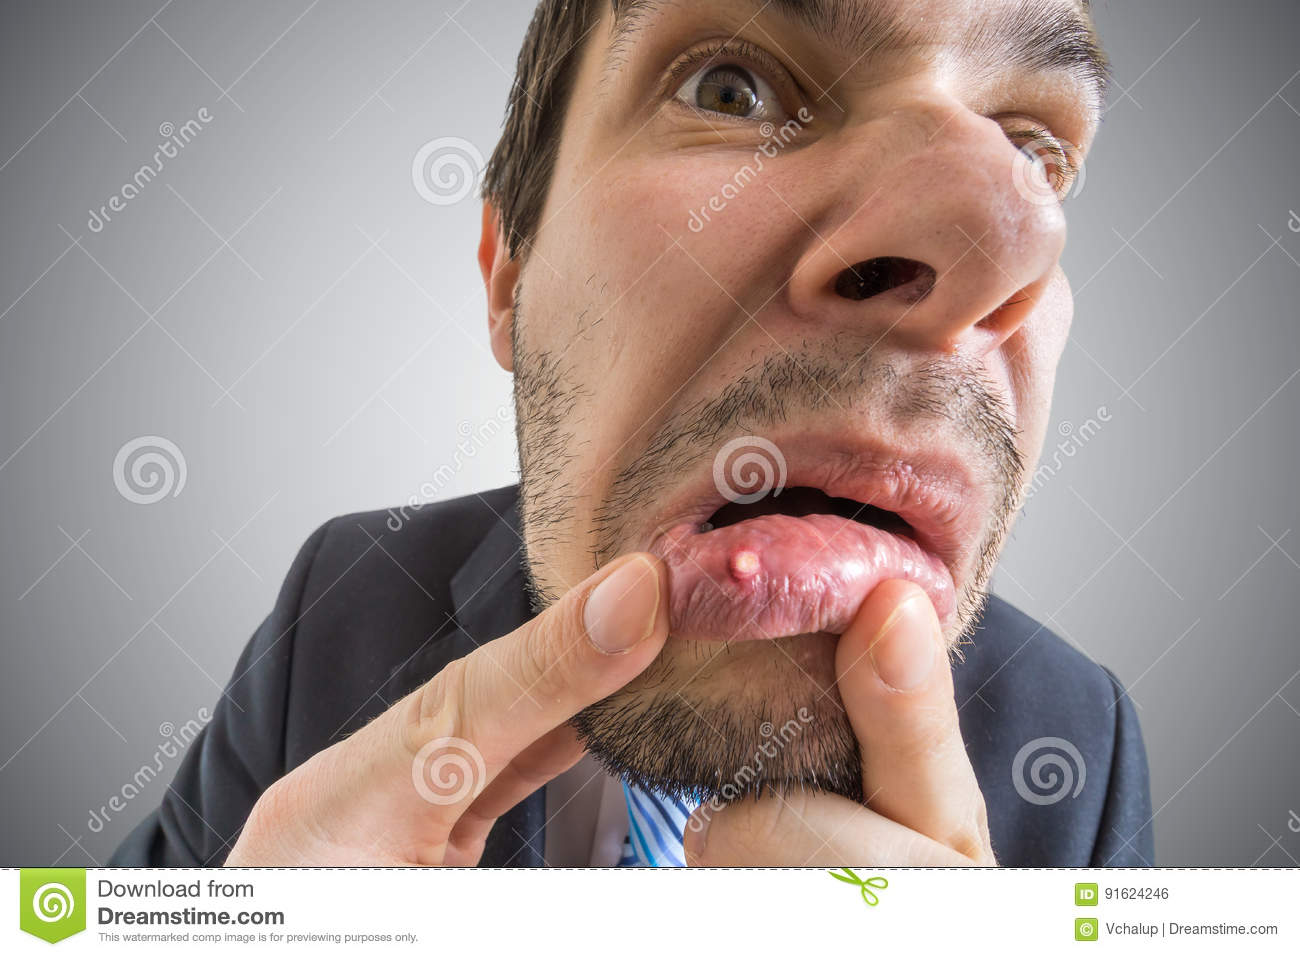 Young man is looking on ulcer or blister in his mouth in mirror